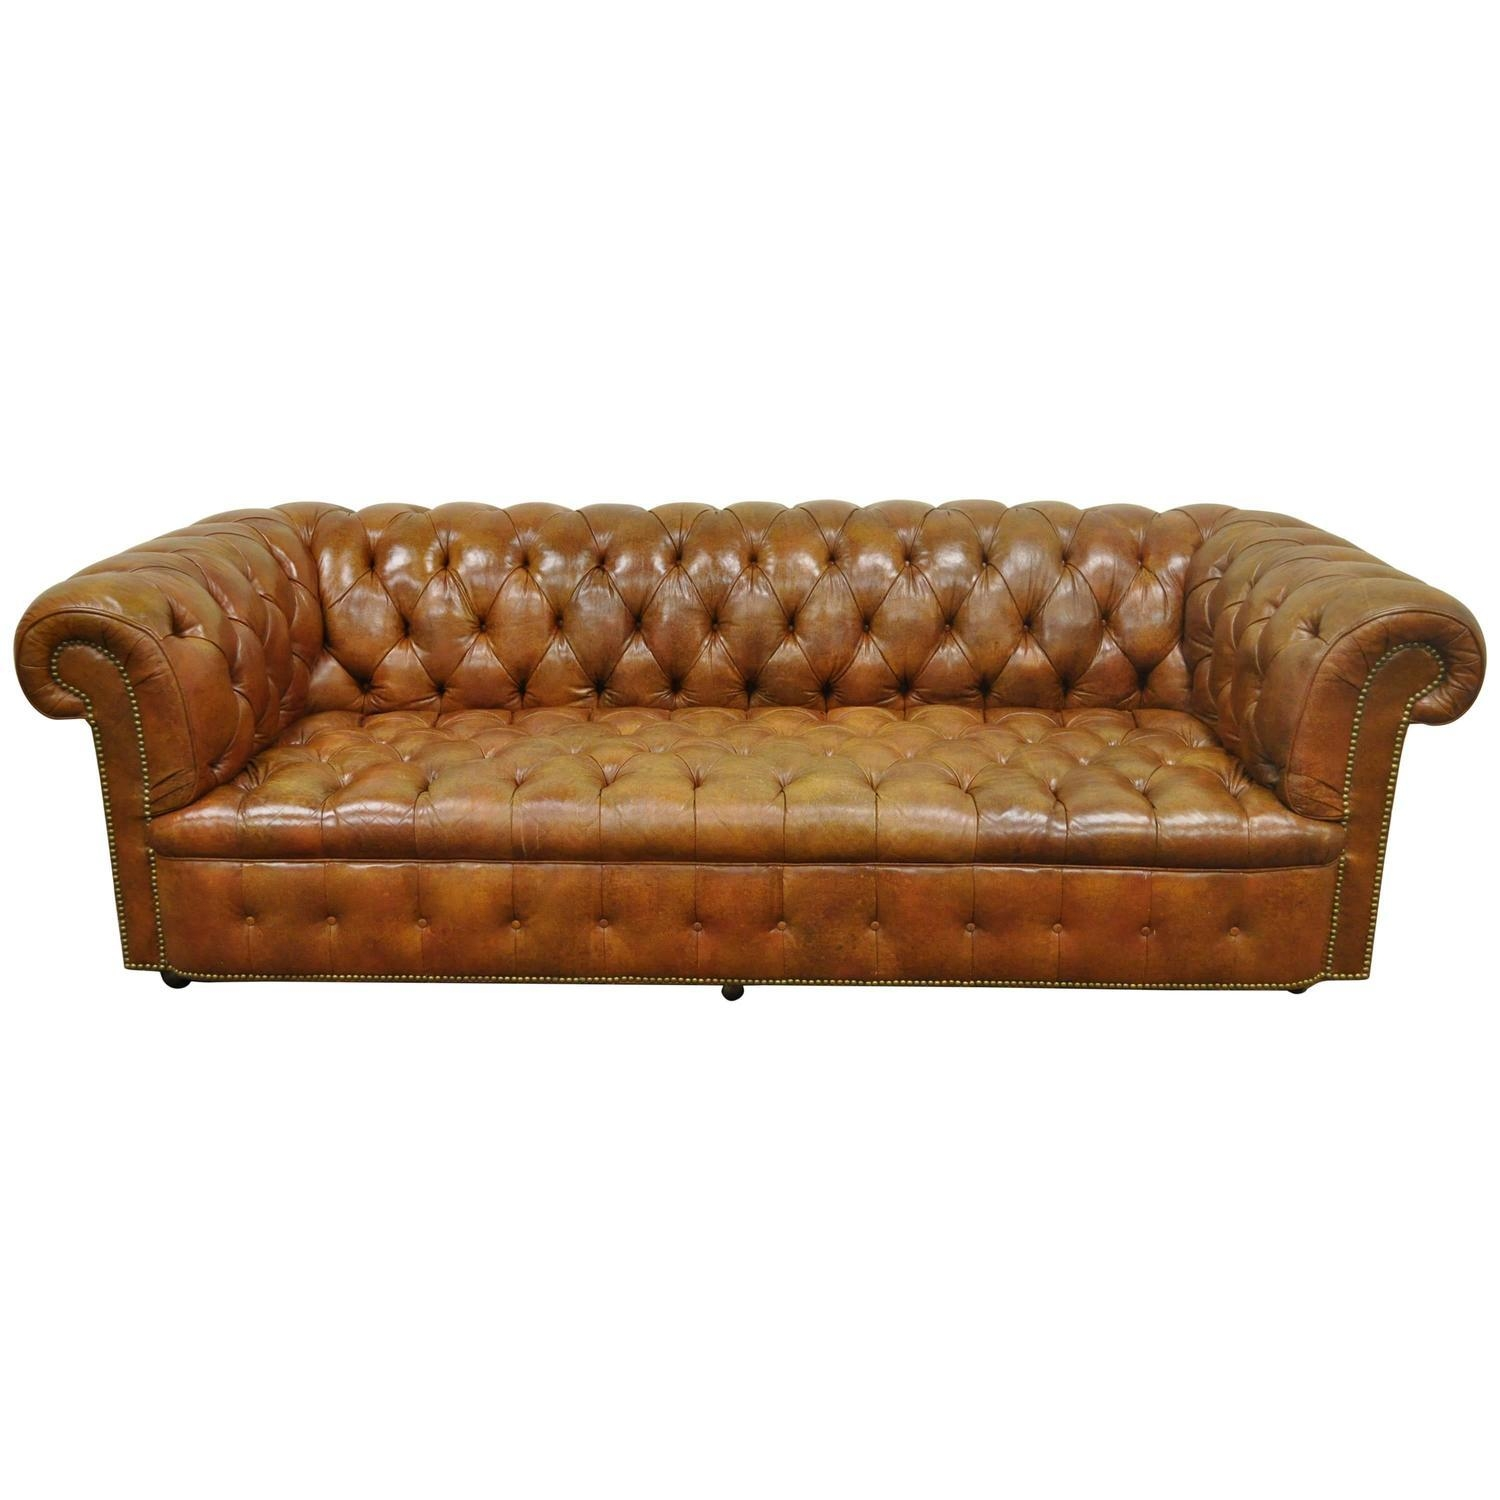 Sofas Center : Henredon Sofa Prices Rolled Arm English Style Pertaining To Brown Leather Tufted Sofas (Image 18 of 20)